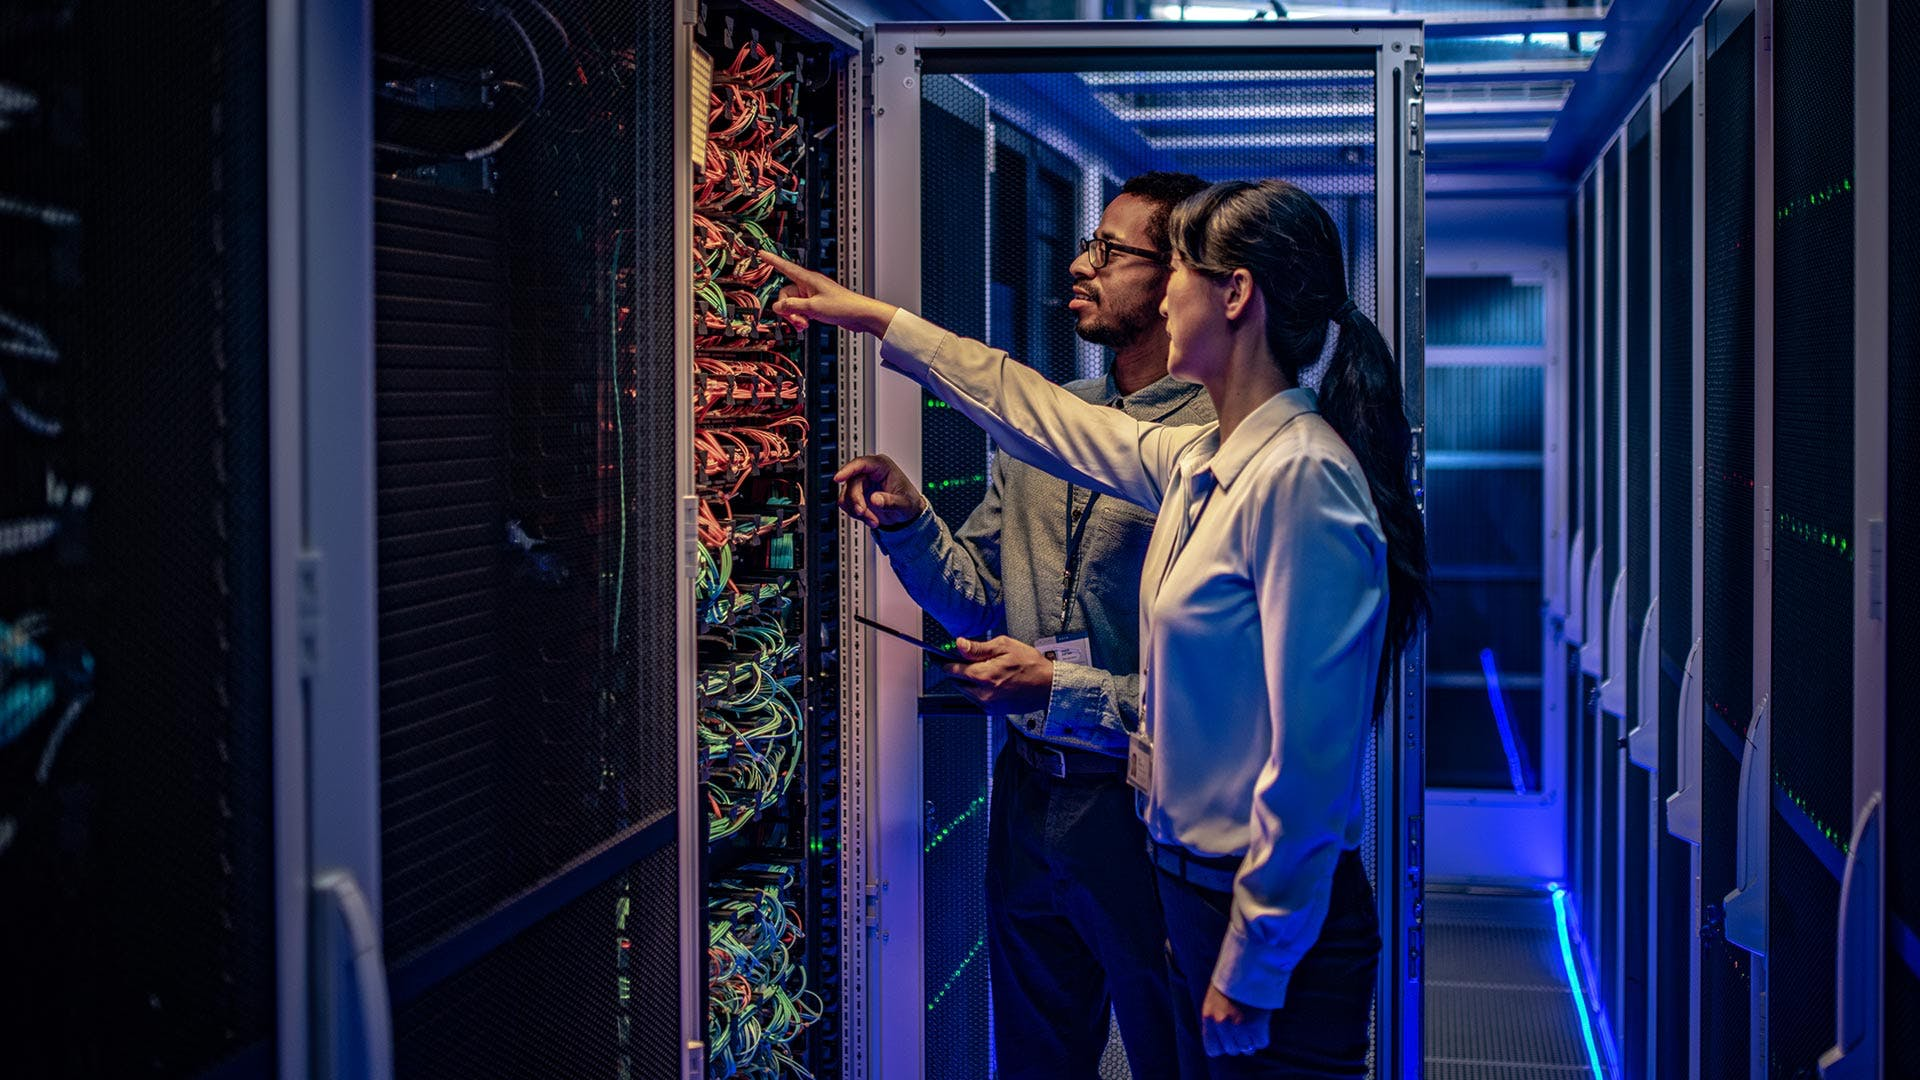 Two IBMers working on a supercomputer